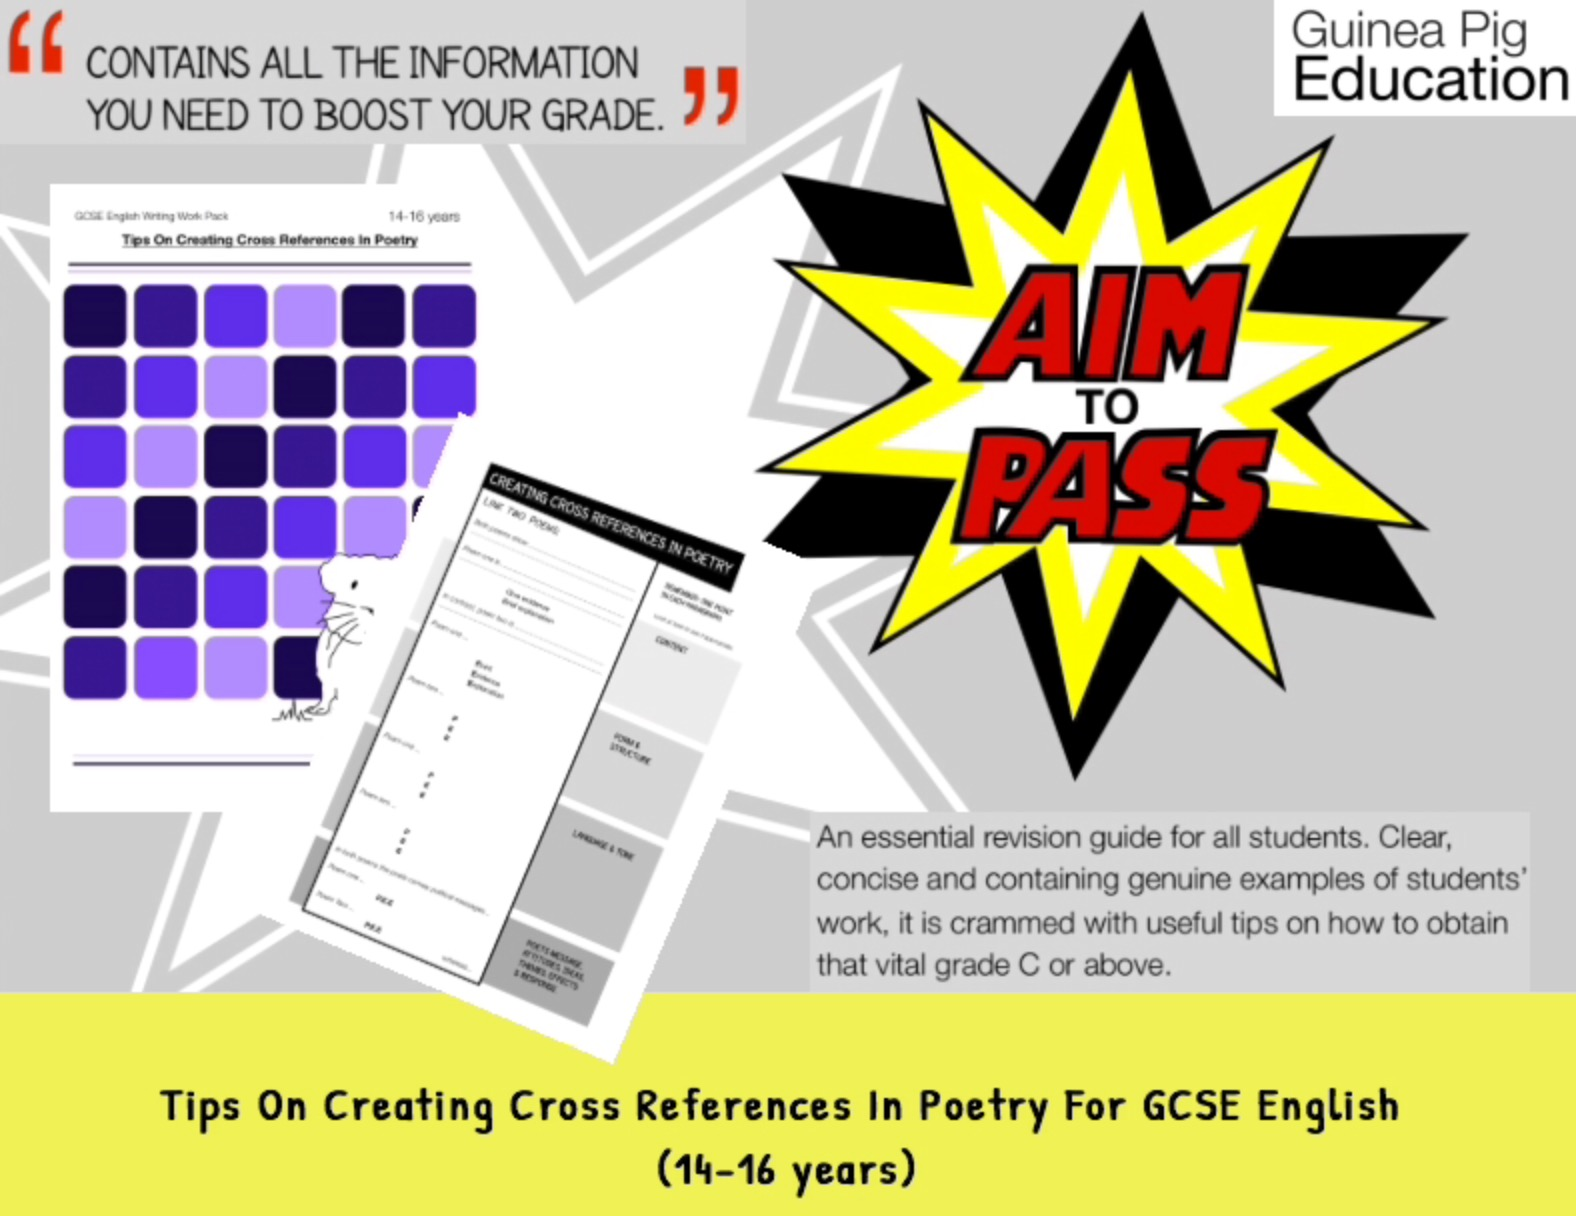 Tips On Creating Cross References In Poetry (Improve Your Grades At GCSE) (14-16 years)